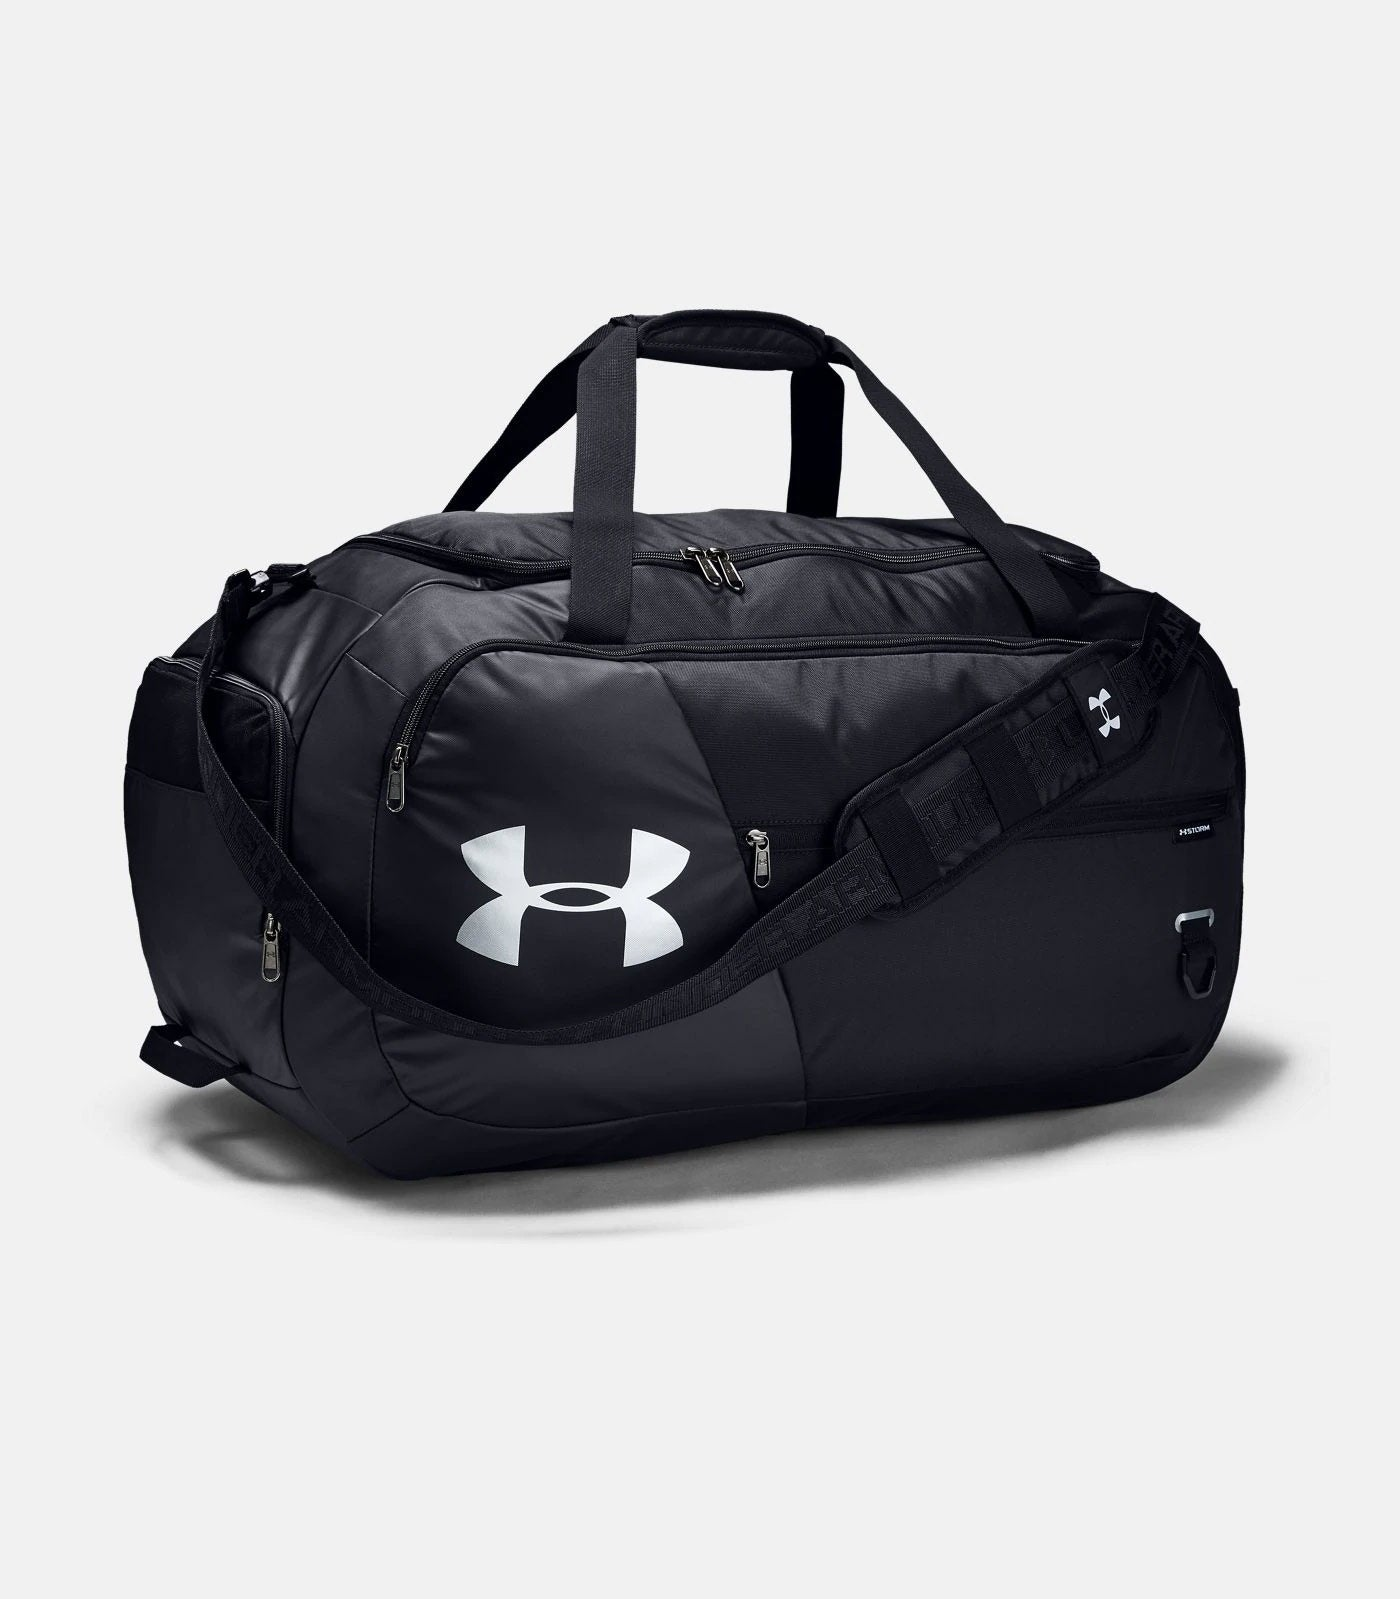 Under Armour Undeniable 4.0 Large Duffle